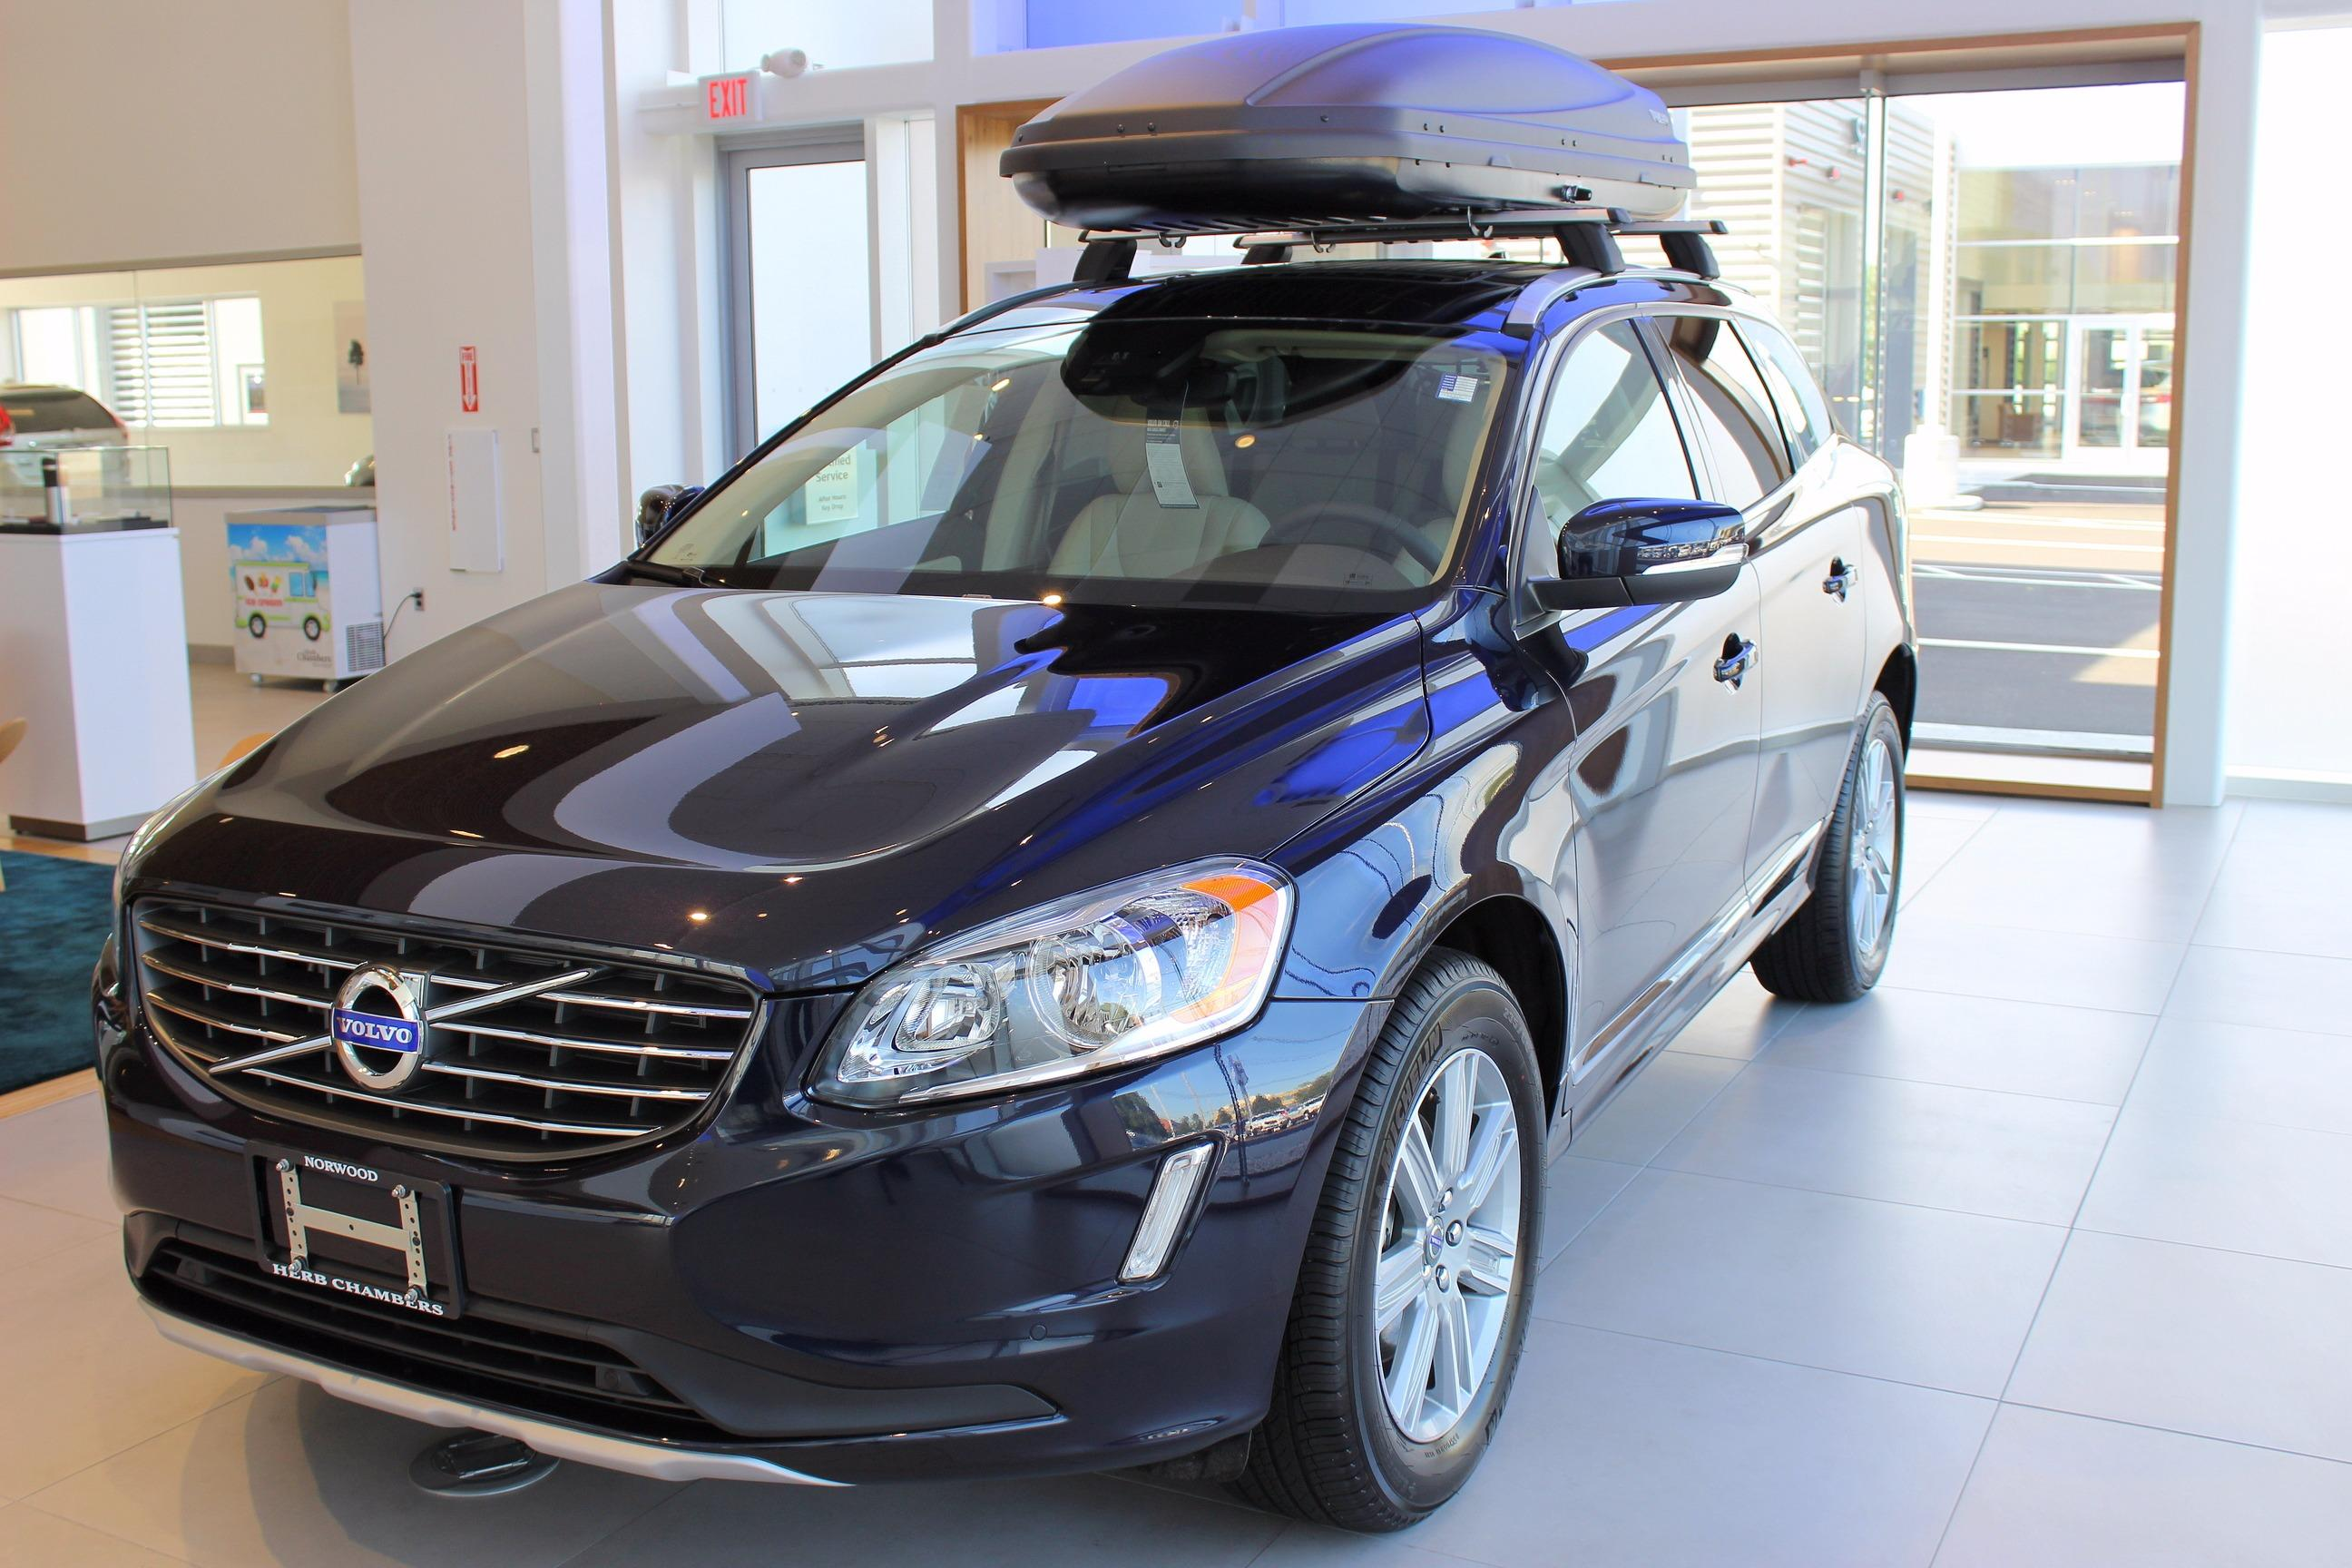 Herb Chambers Volvo Cars of Norwood in Norwood MA